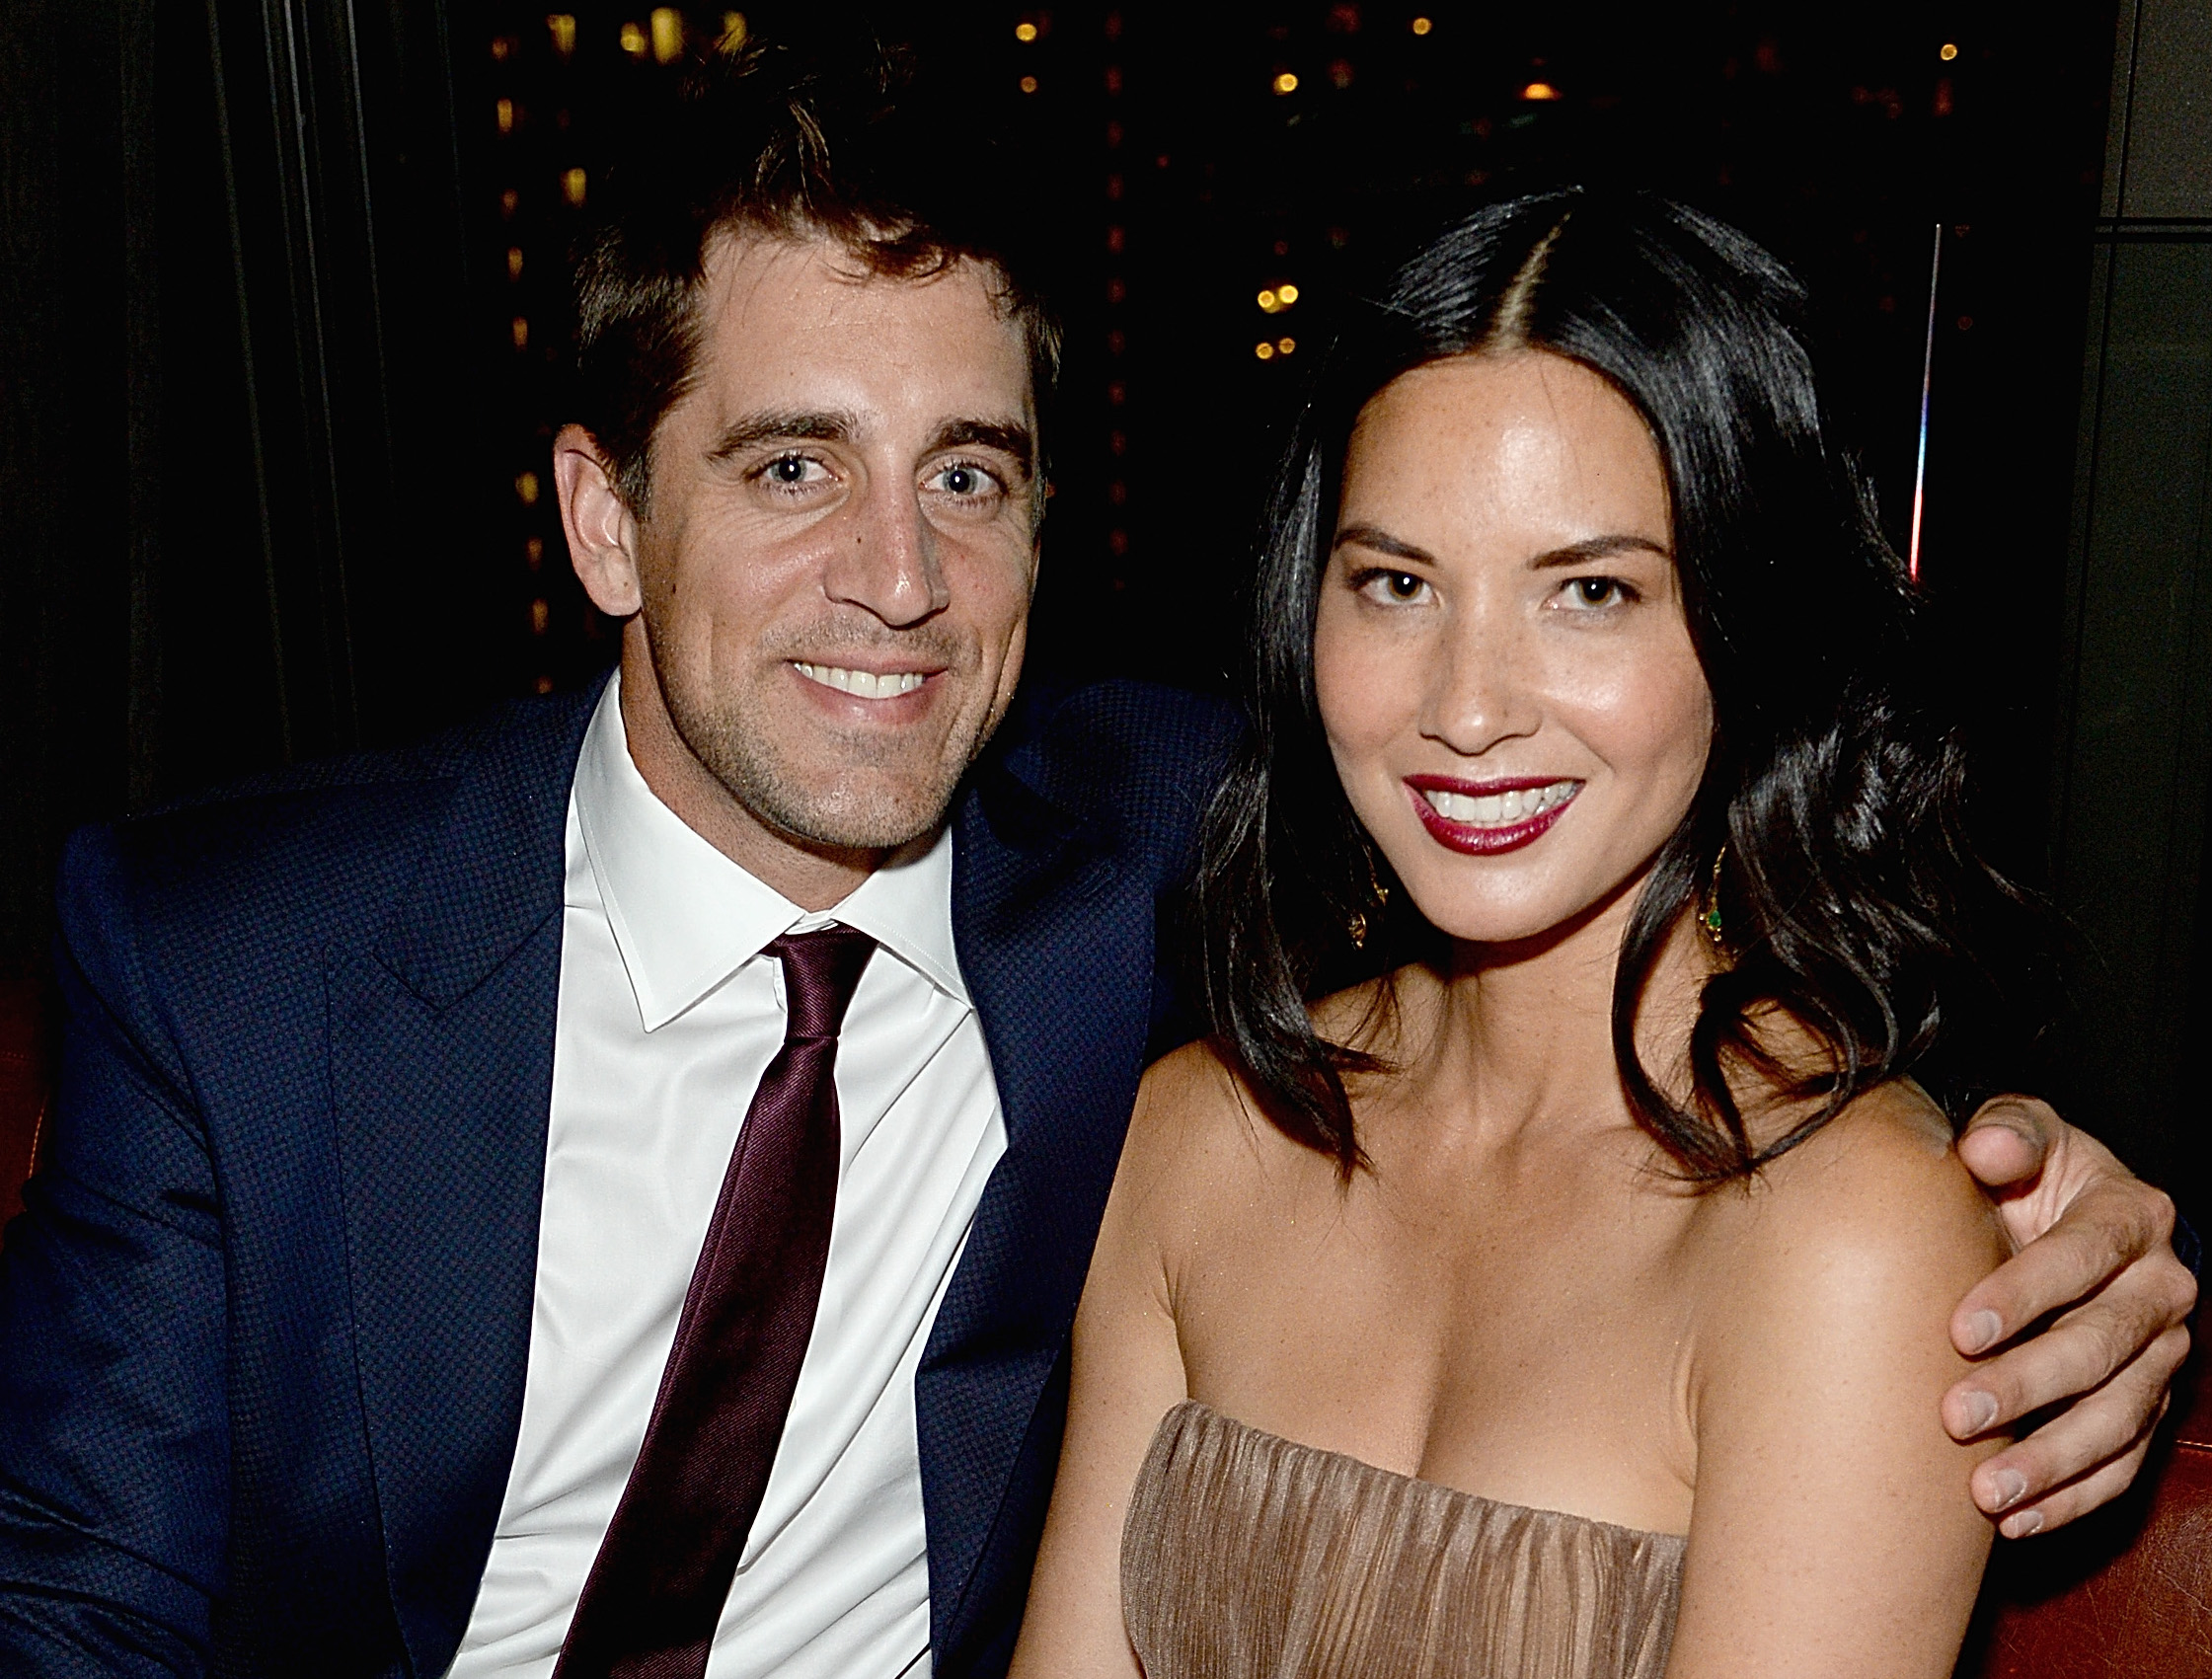 Aaron rodgers is dating olivia munn